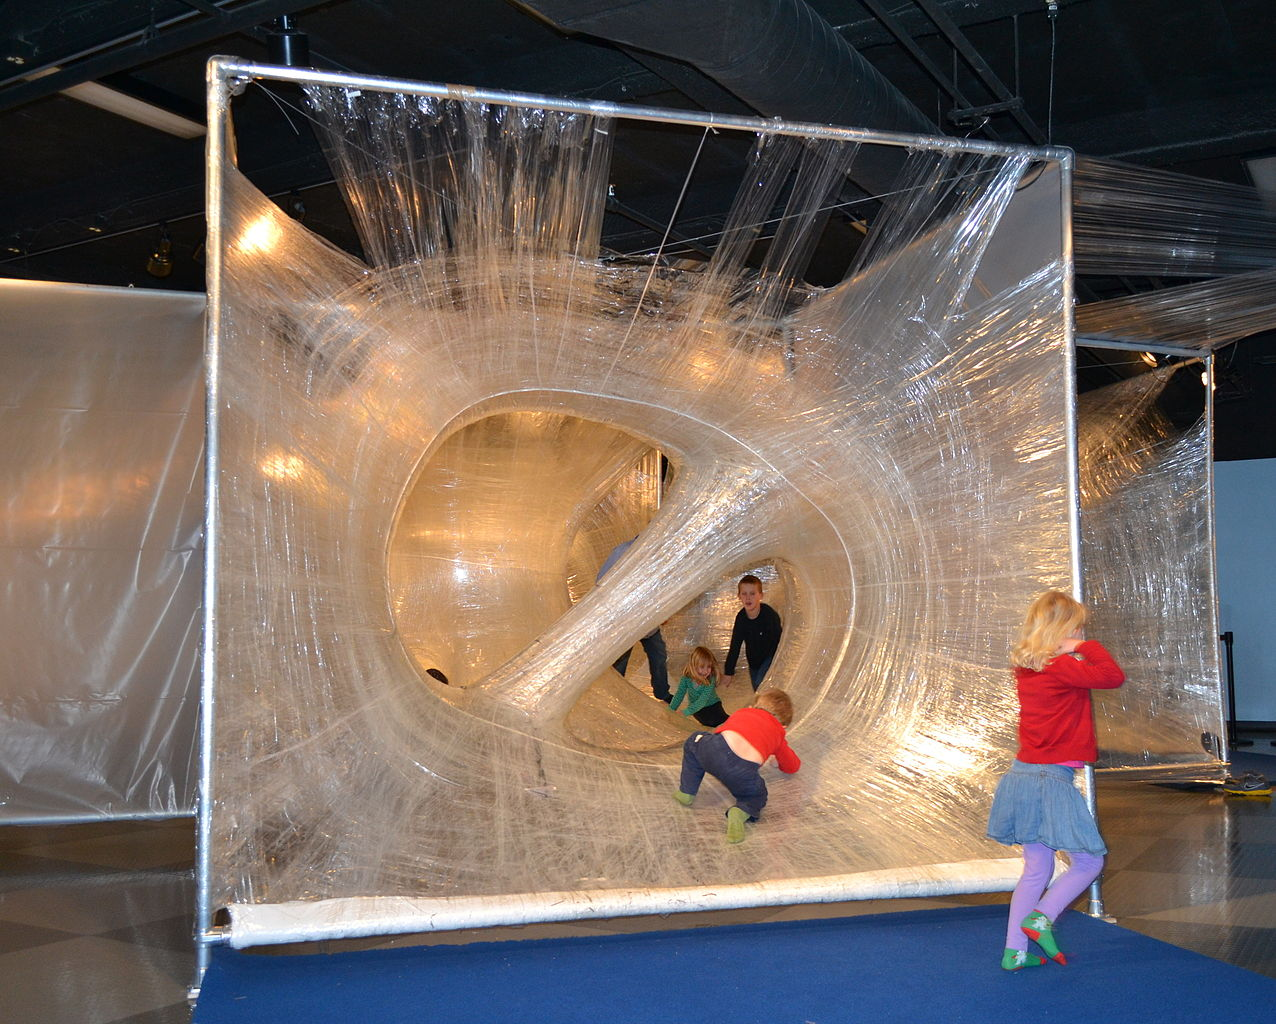 File:Tape Scape by Eric Lennartson at childrens discovery museum in San ...